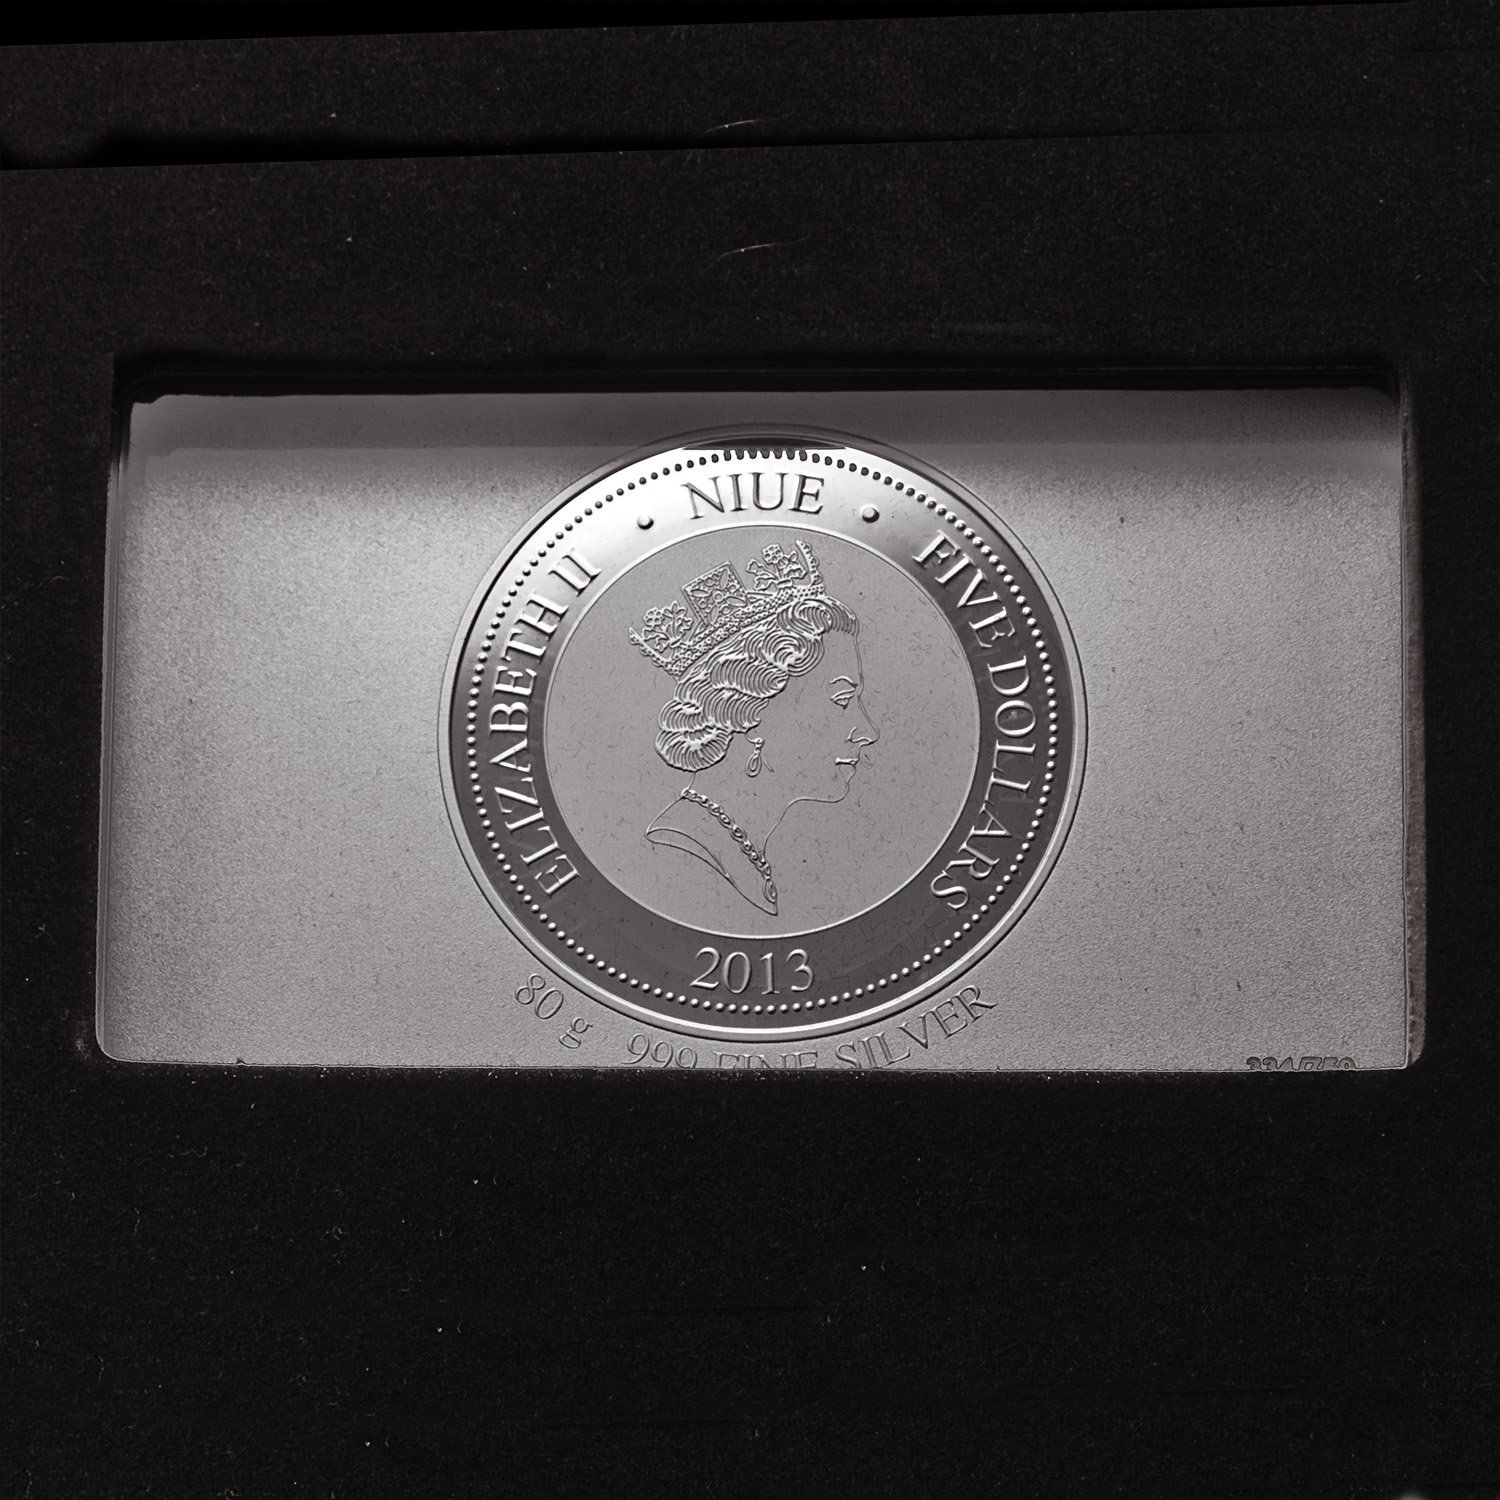 2013 Niue 30.86 oz Silver Giants of Art - The Creation of Adam